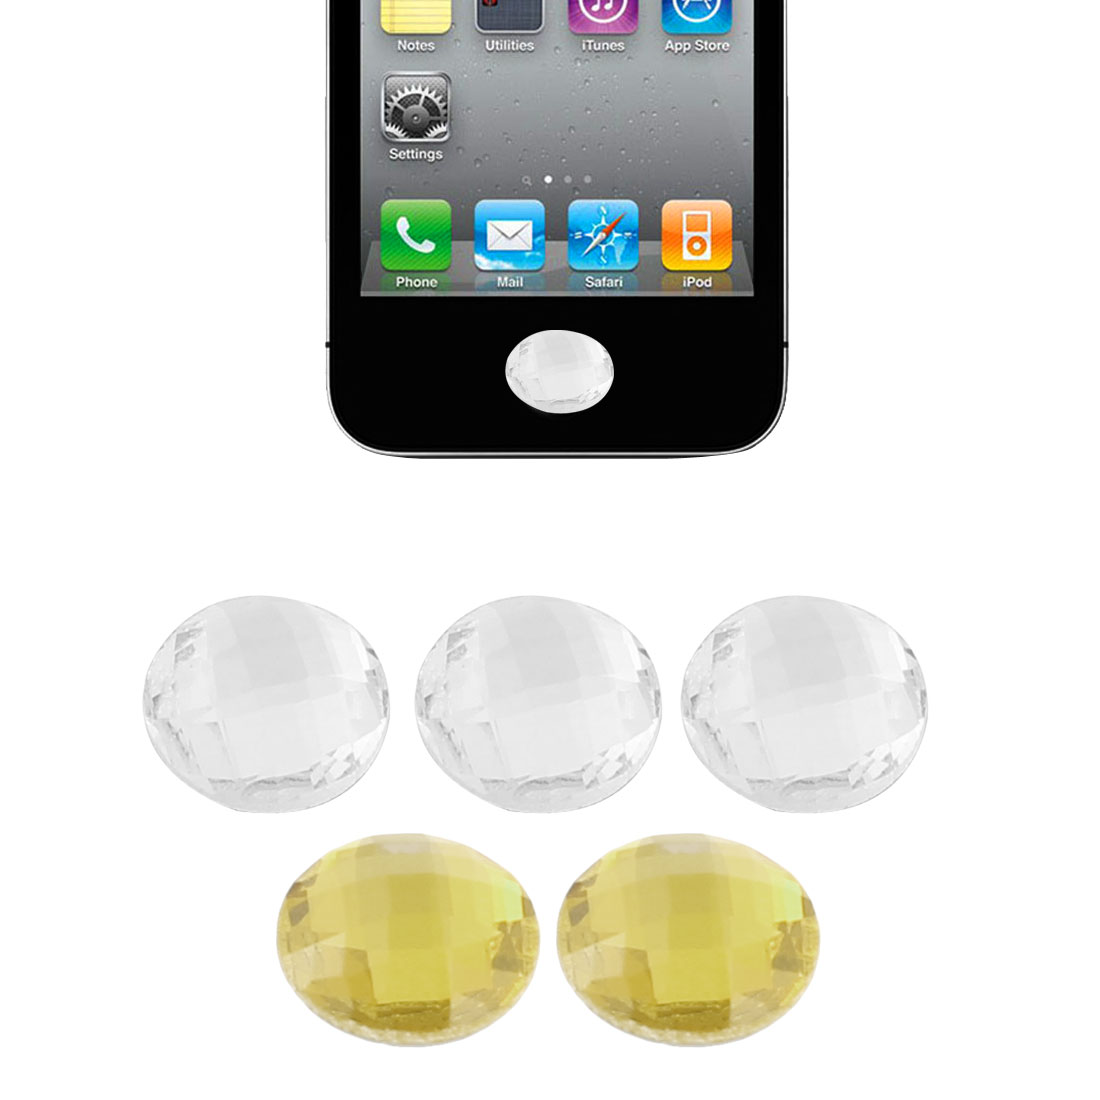 Unique Bargains 5 Pcs Plastic Round Circle Home Button Sticker Yellow Clear for iPad 1 2 3